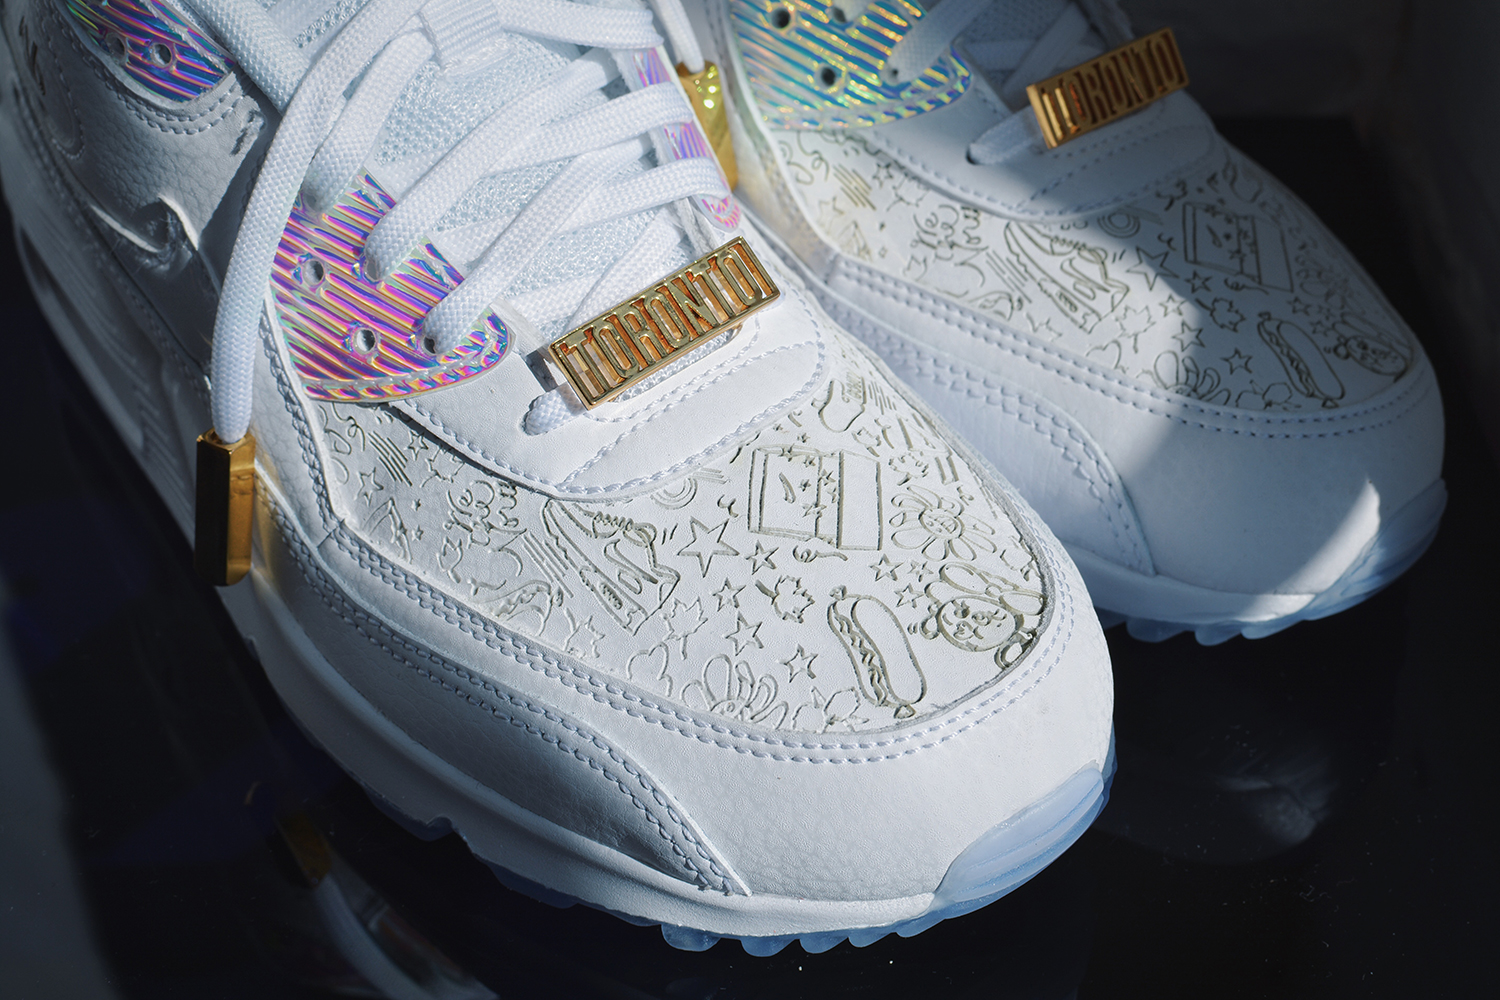 3d90cdca8384 Nike has another special Air Max sneaker lined up for Canada. Following an  Air Max 1 last year